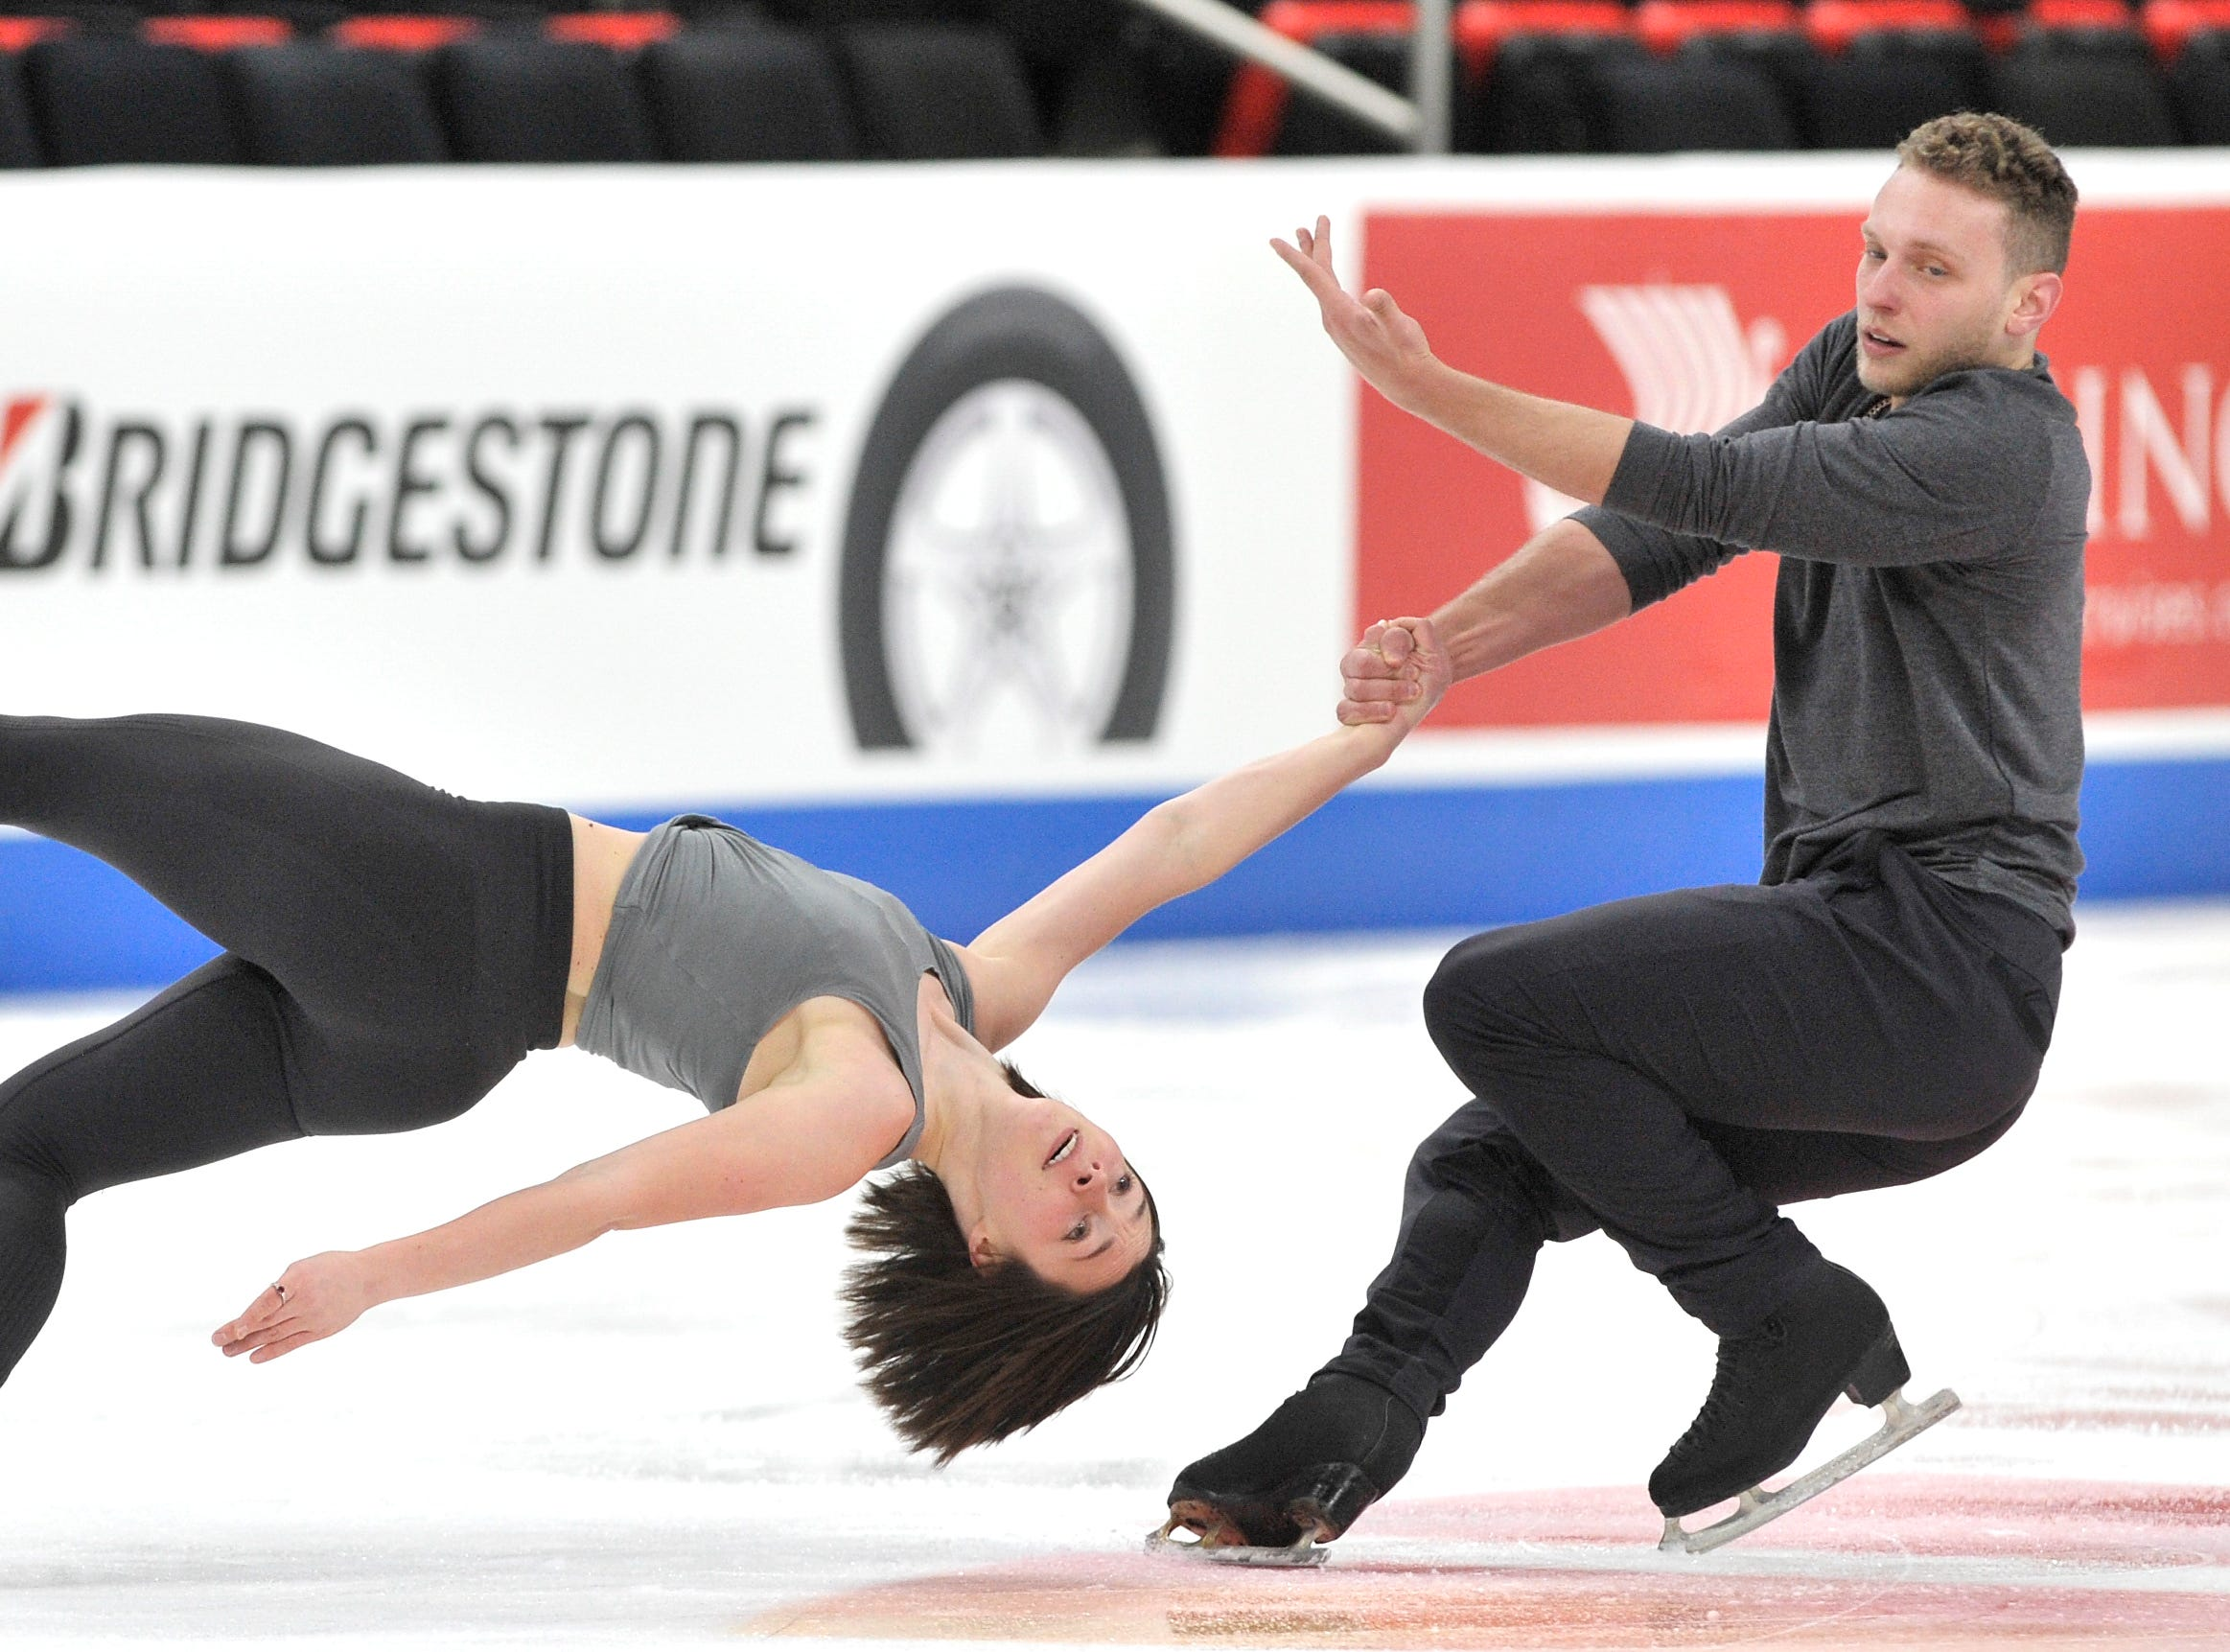 Pairs Allison Timlen and Justin Highgate-Brutman practice during the 2019 GEICO U.S. Figure Skating Championship at Little Caesars Arena in Detroit, Tuesday, January 22, 2019.